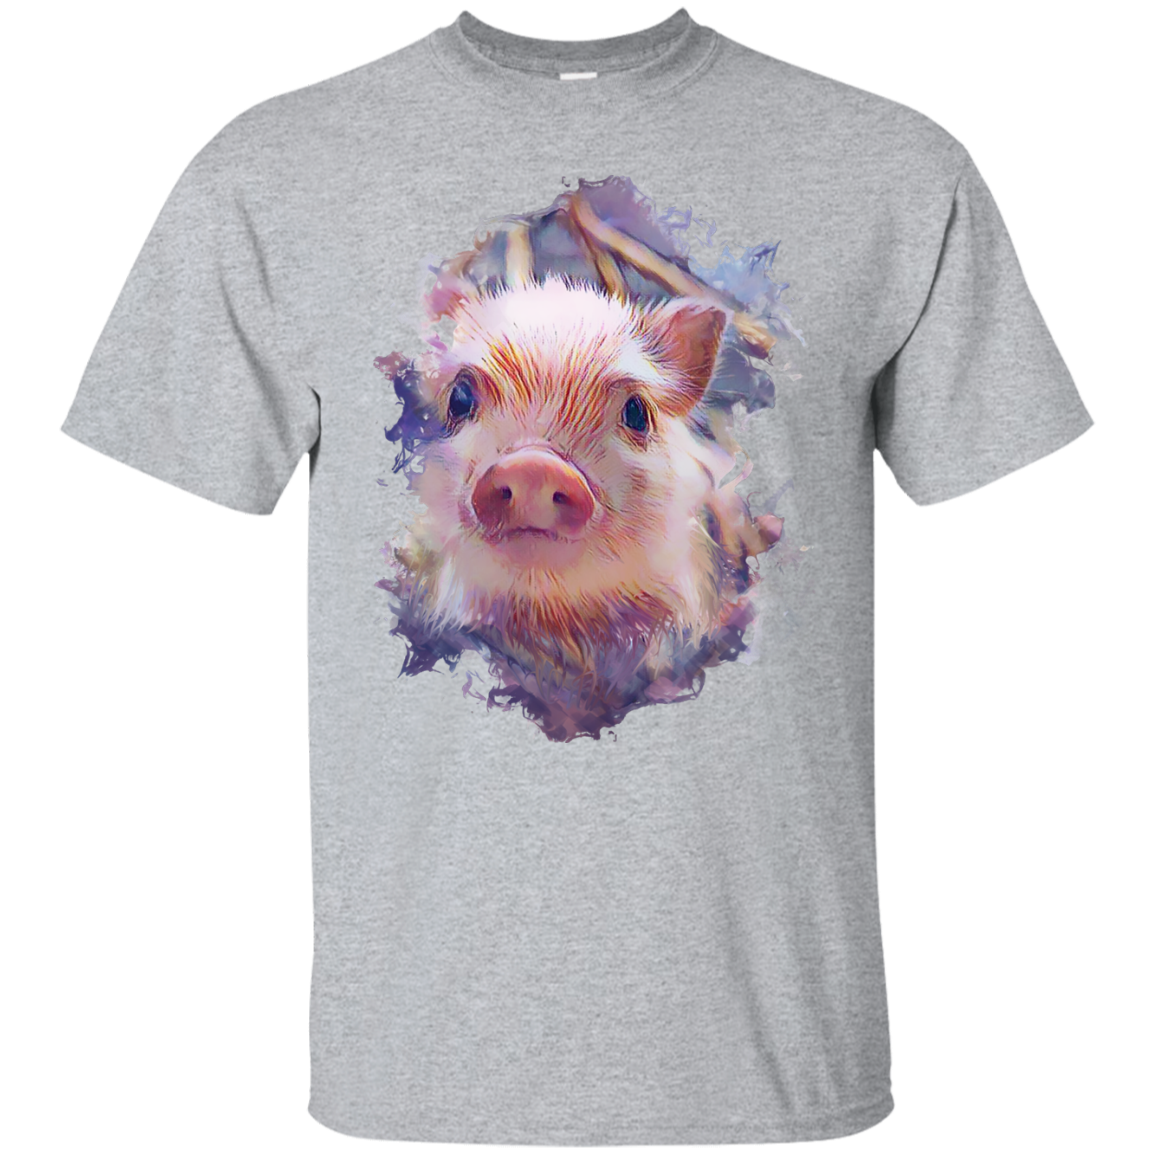 Cute Piggy T-Shirt